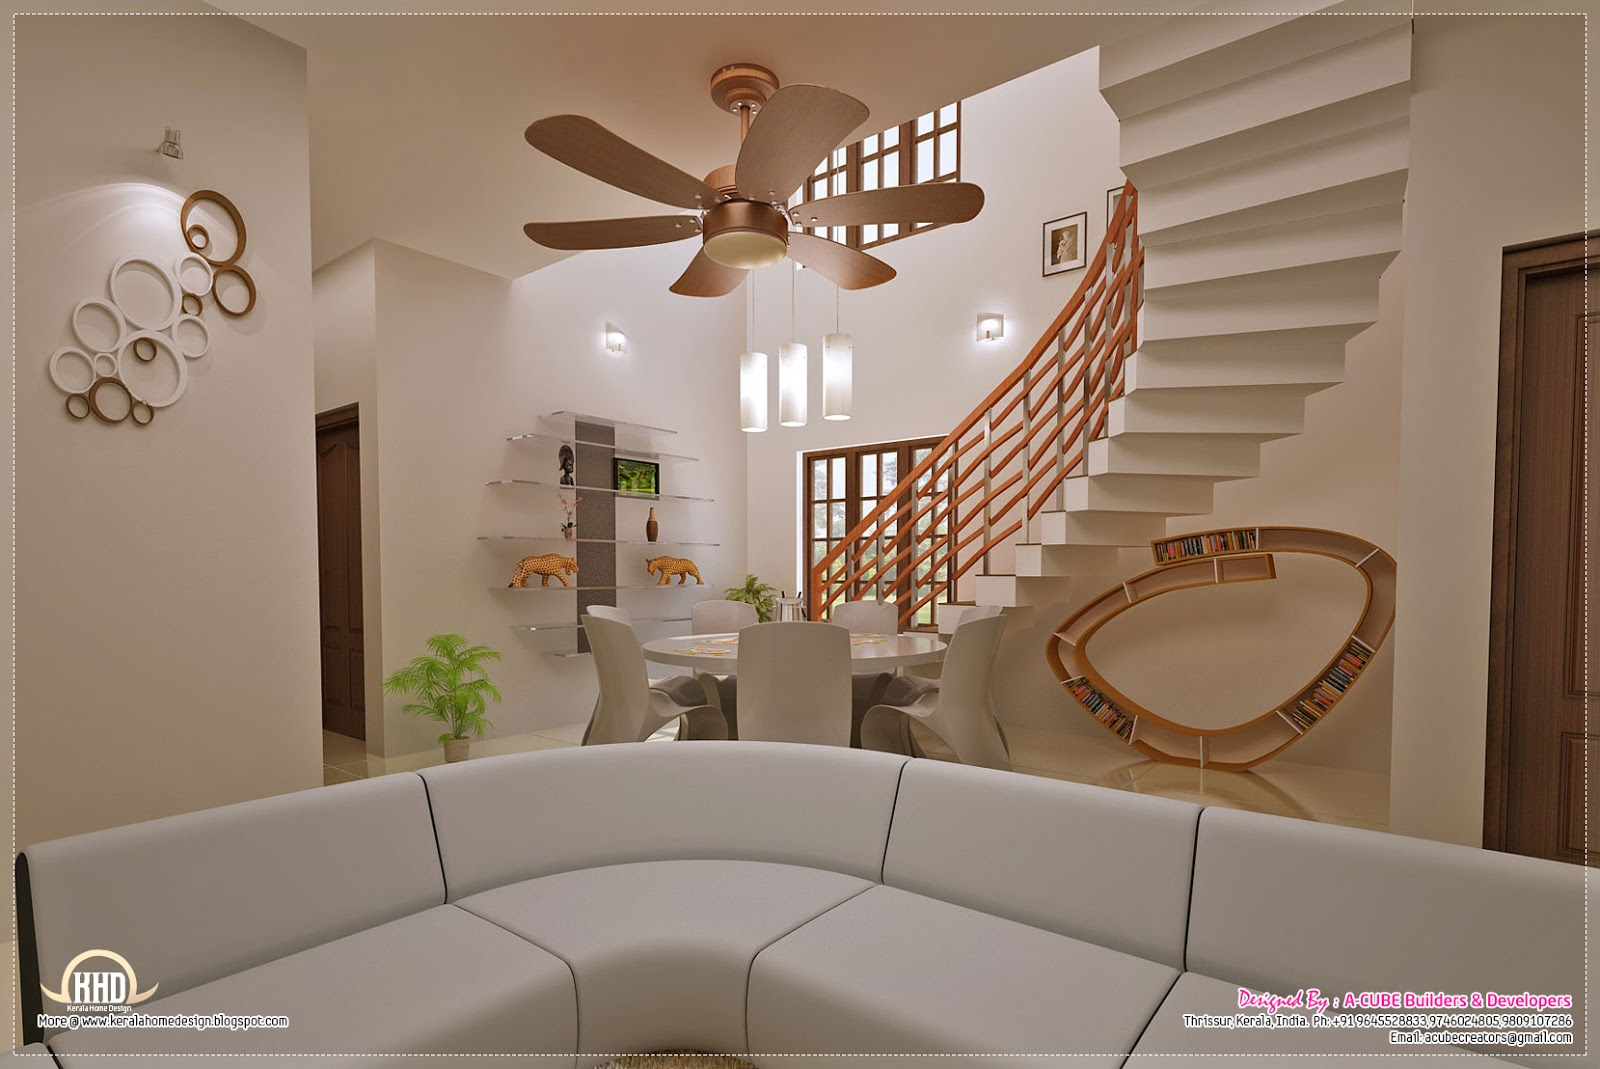 Awesome interior decoration ideas kerala home design and Home interior design indian style